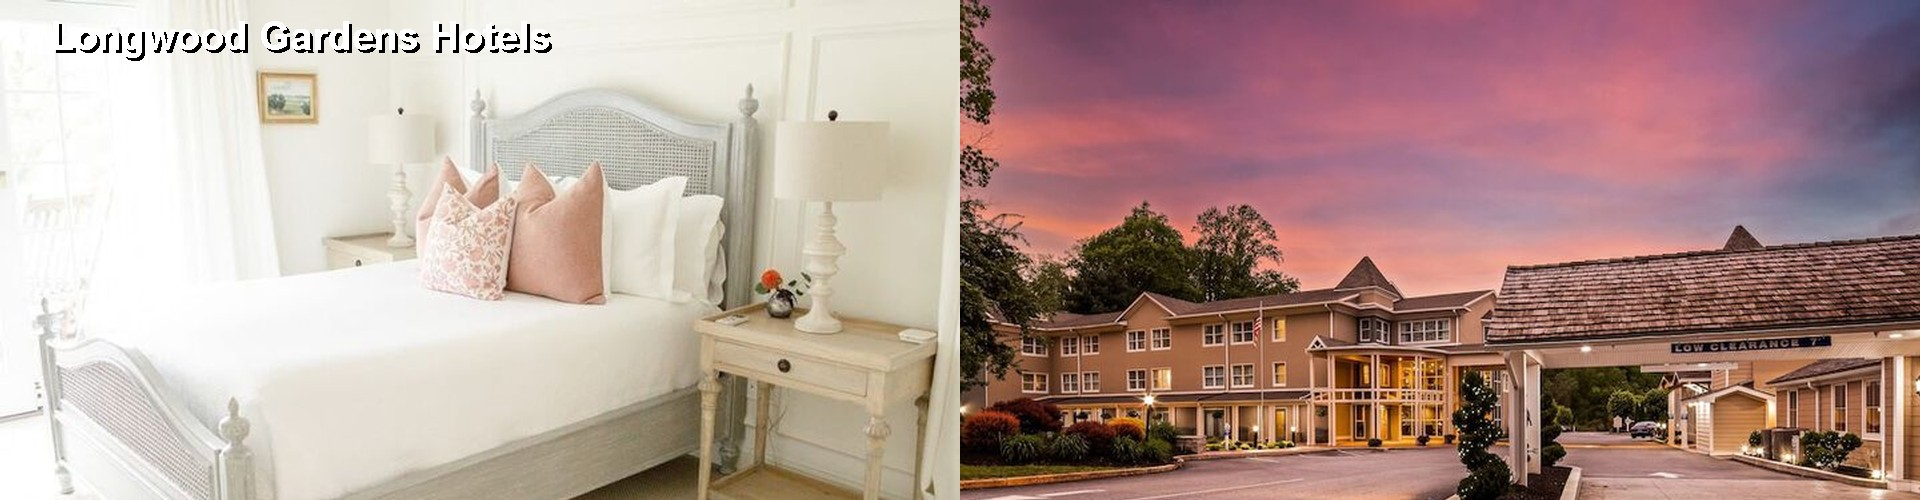 $54+ Hotels Near Longwood Gardens in Kennett Square (PA)